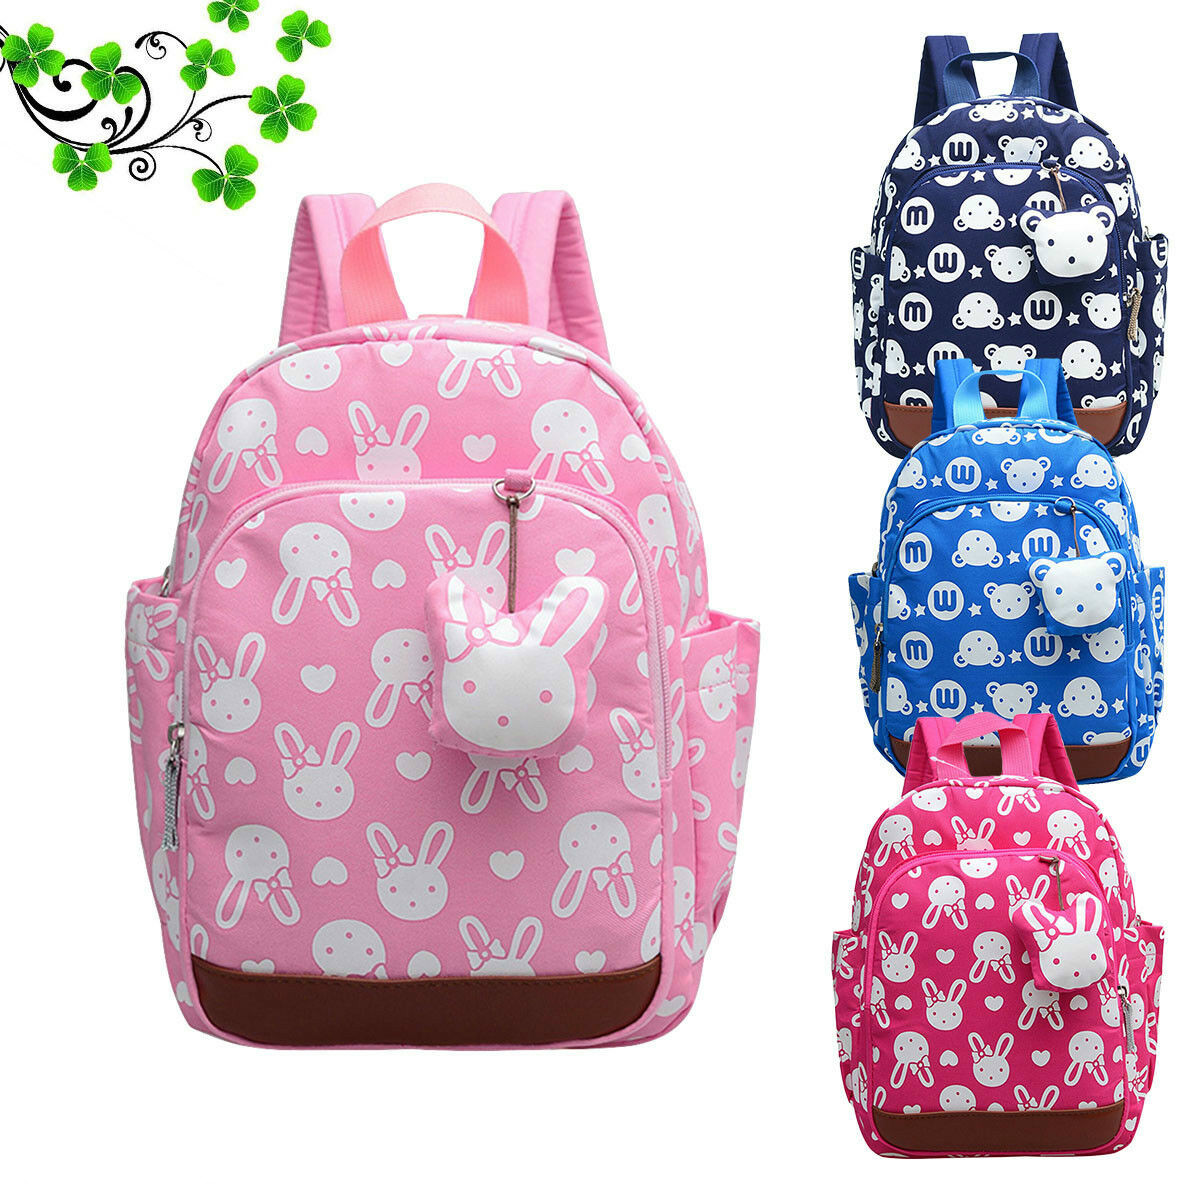 Baby Cartoon School Bag Toddler Kid Boy Girl Cute Rabbit Backpack Kindergarten Mini Backpack